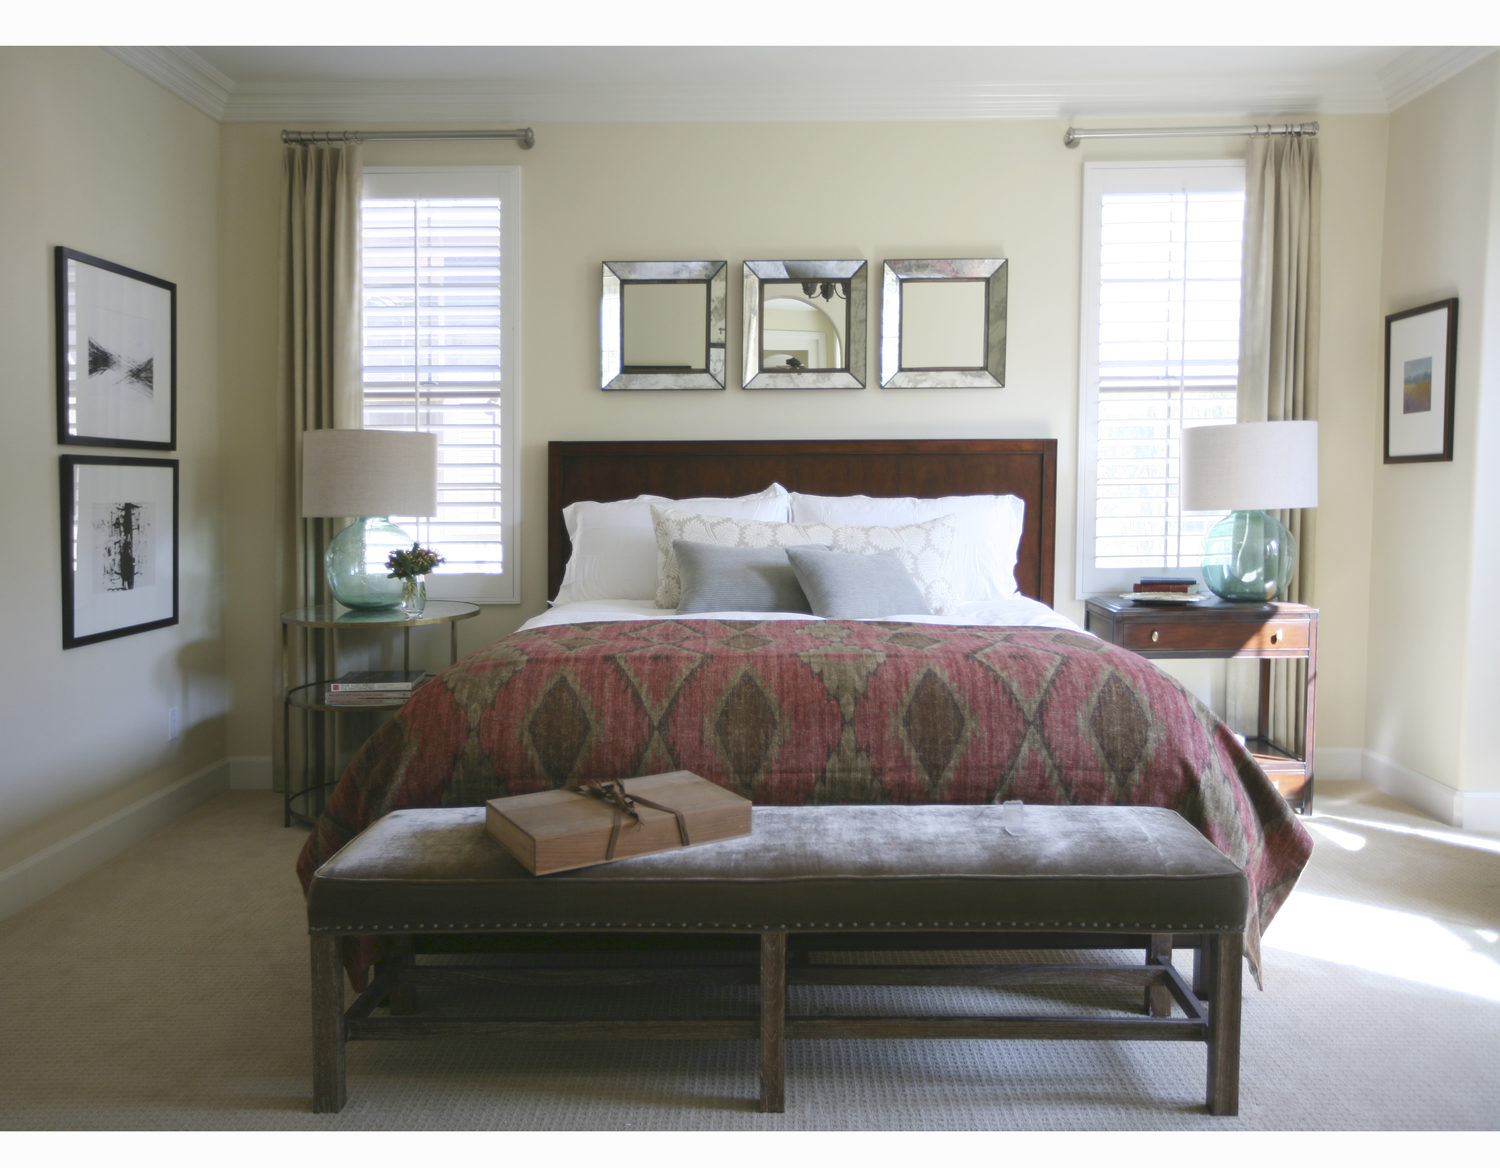 Brittany Stiles Interior Design Bedroom California